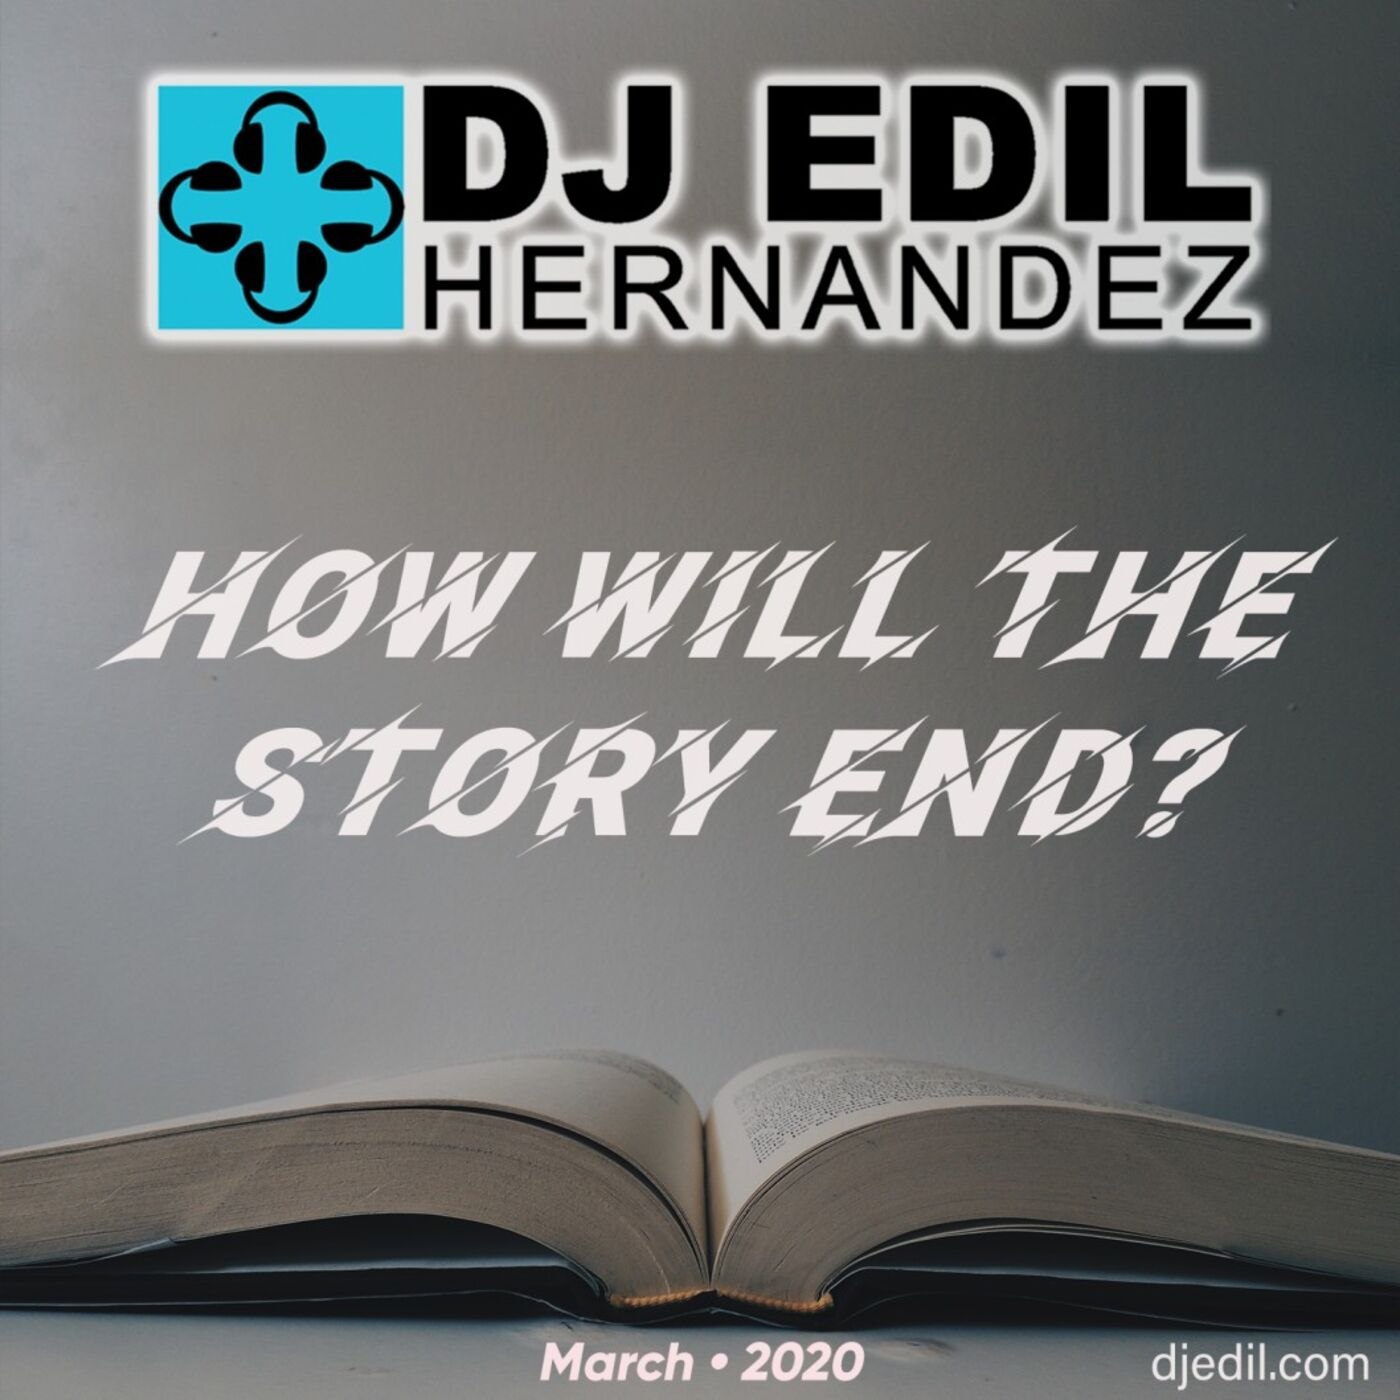 DJ Edil Hernandez :: How Will The Story End?